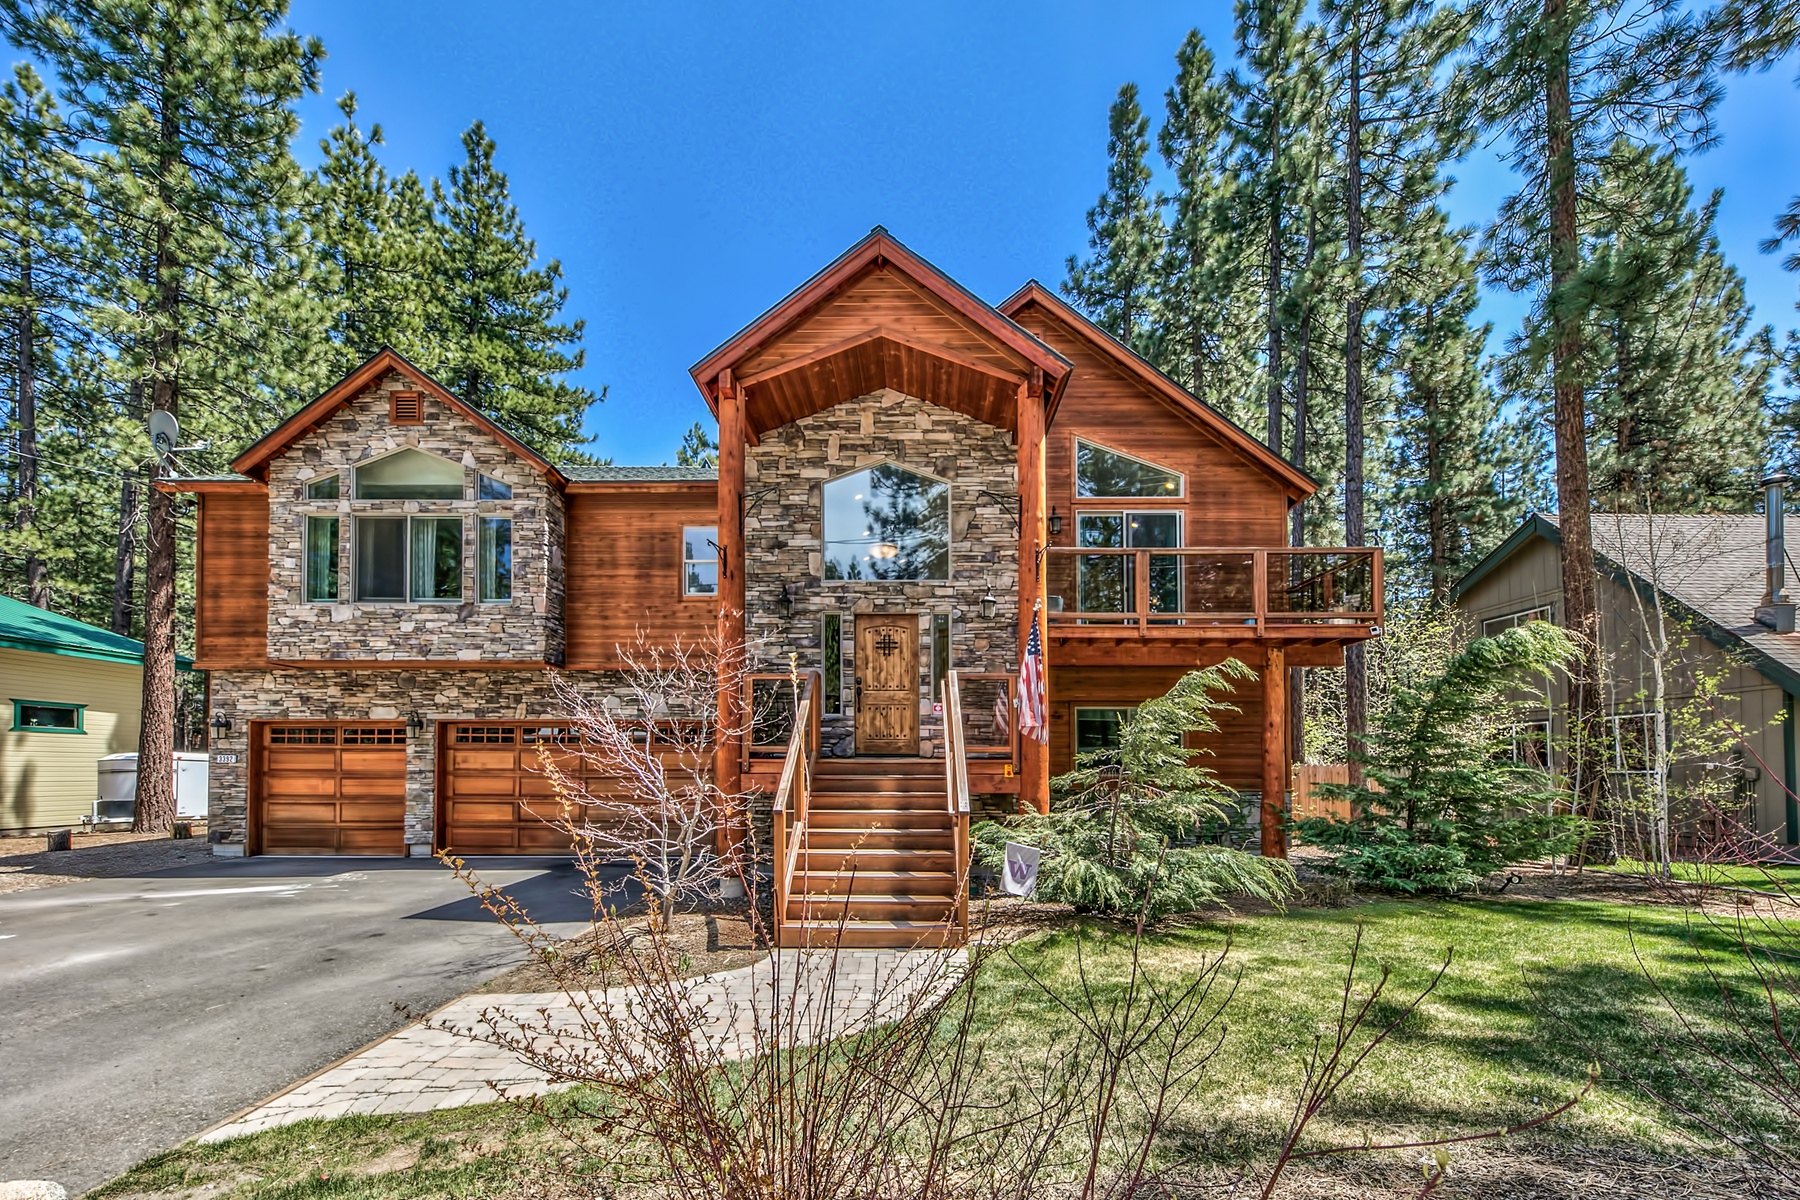 Single Family Home for Active at 3392 Hobart Rd., South Lake Tahoe, CA 3392 Hobart Rd. South Lake Tahoe, California 96150 United States